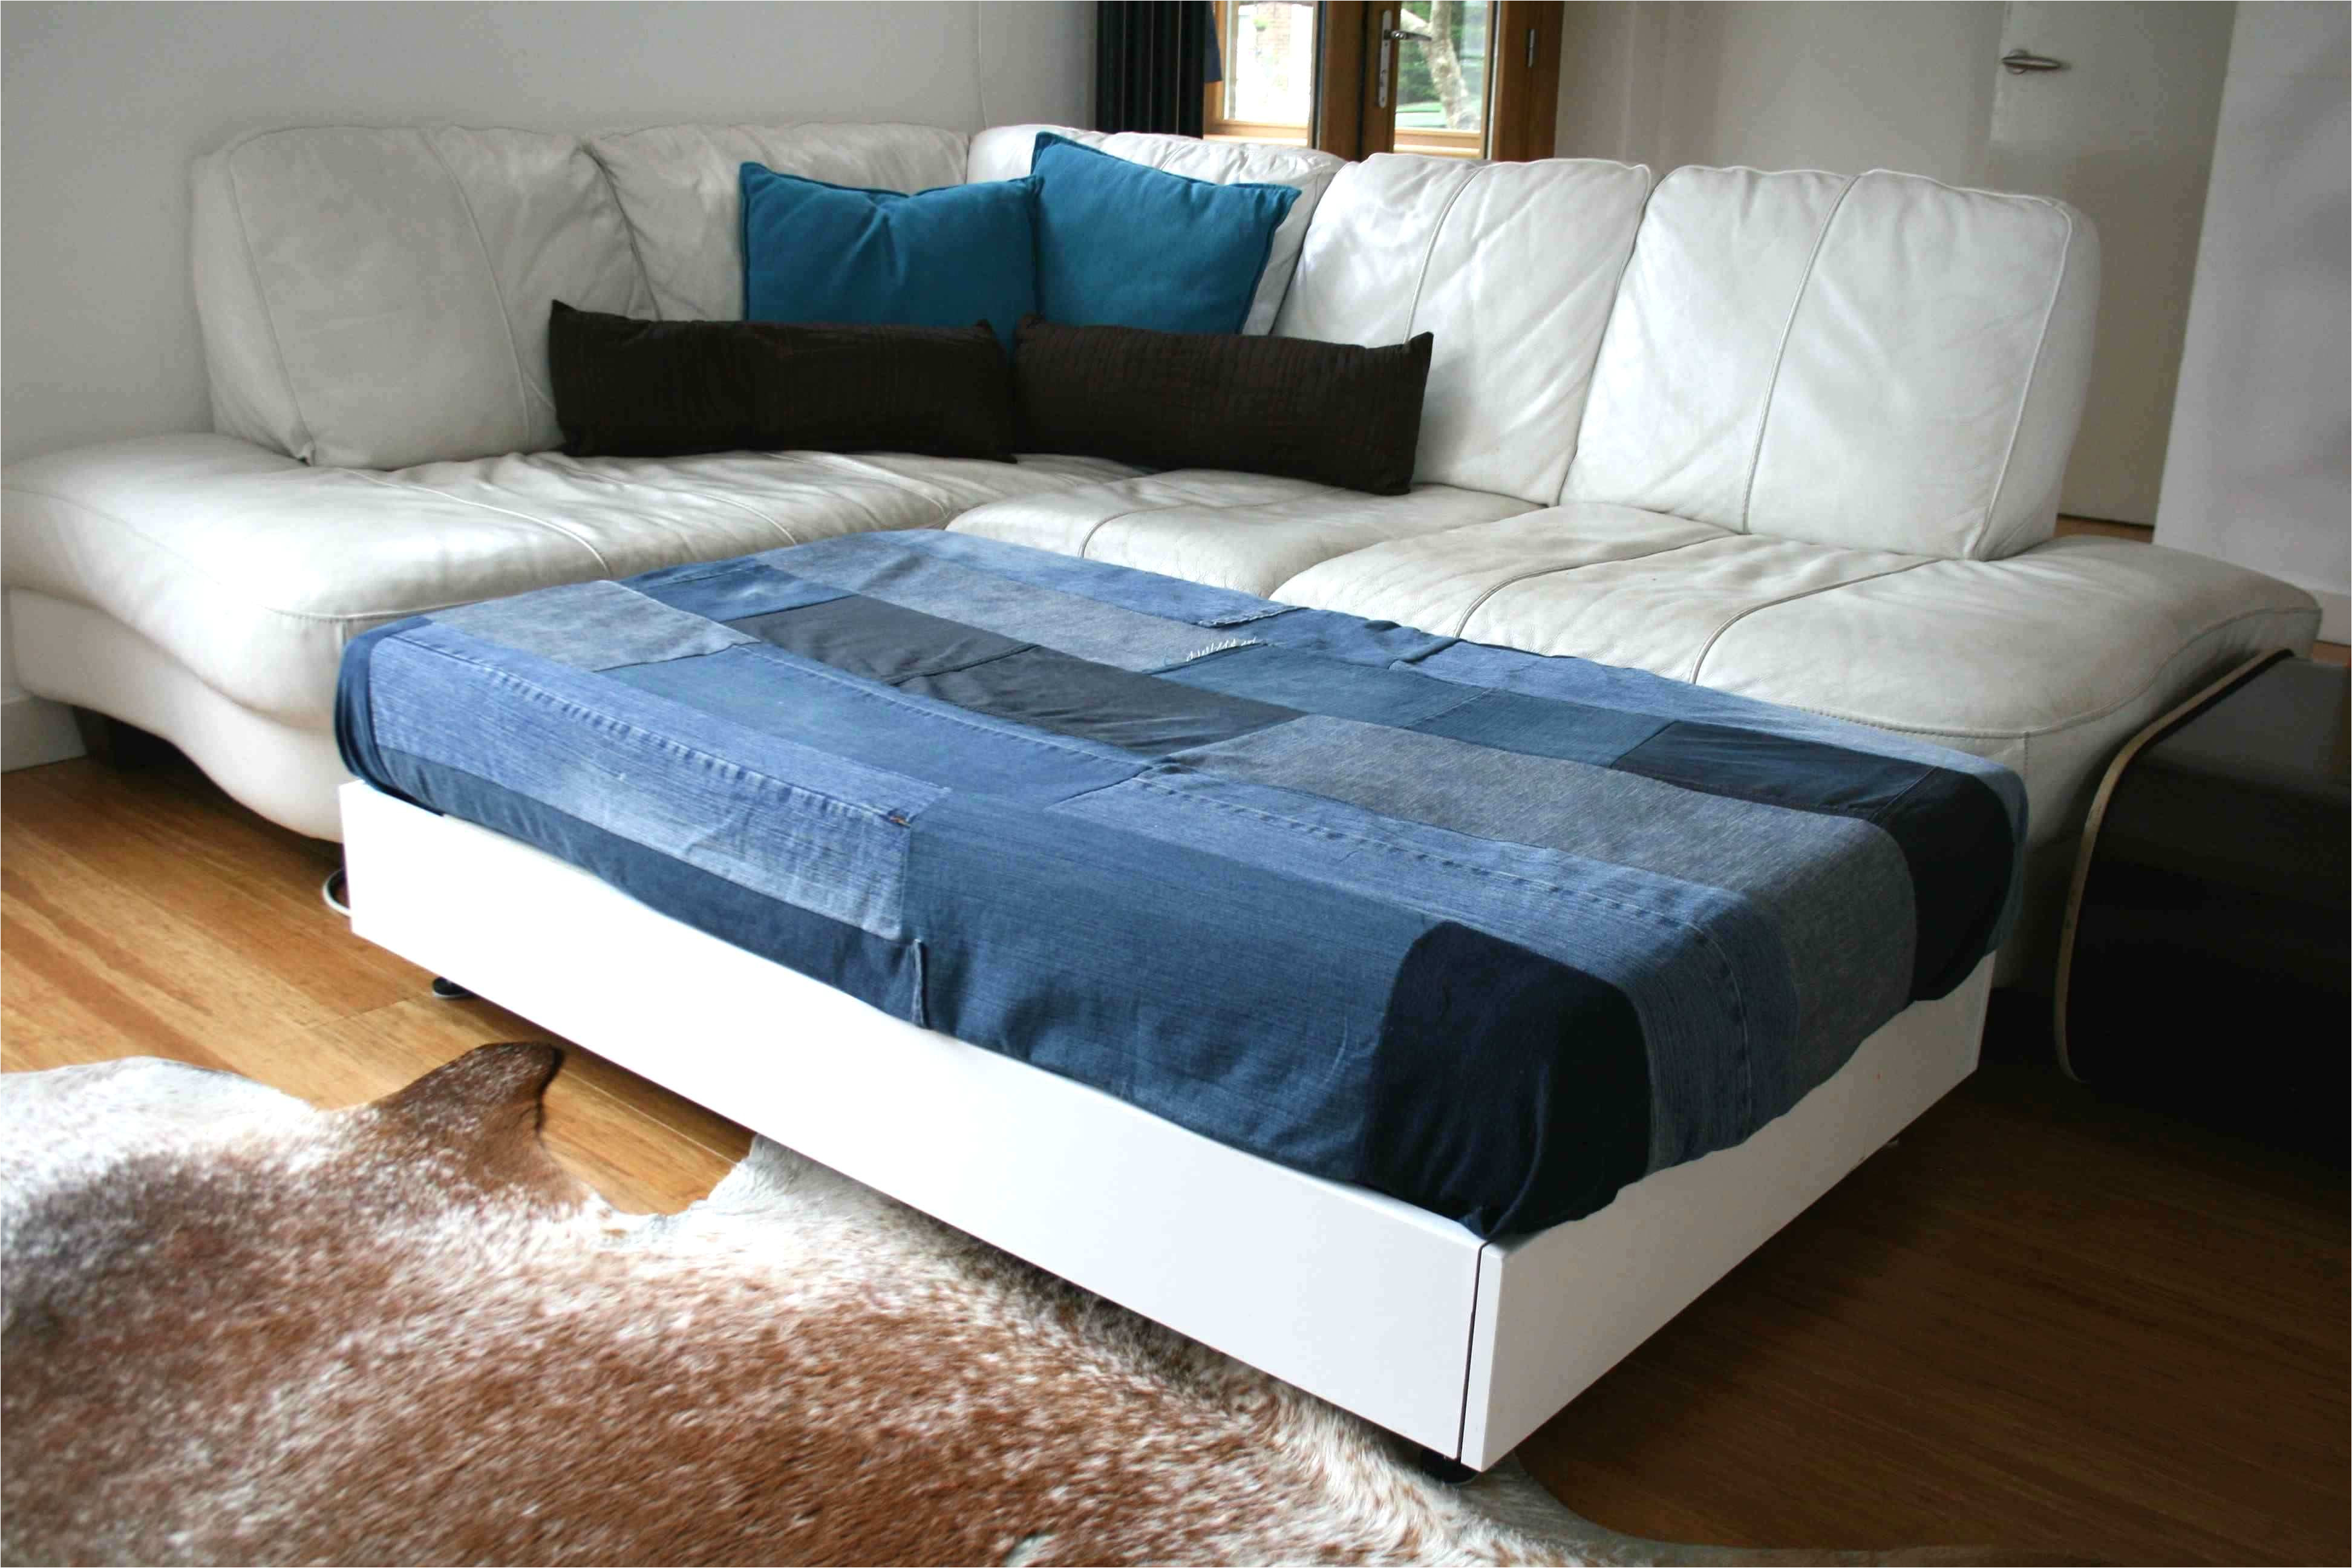 diy sofa family bed with upcycled denim cover luz patterns of simple sam amp 039